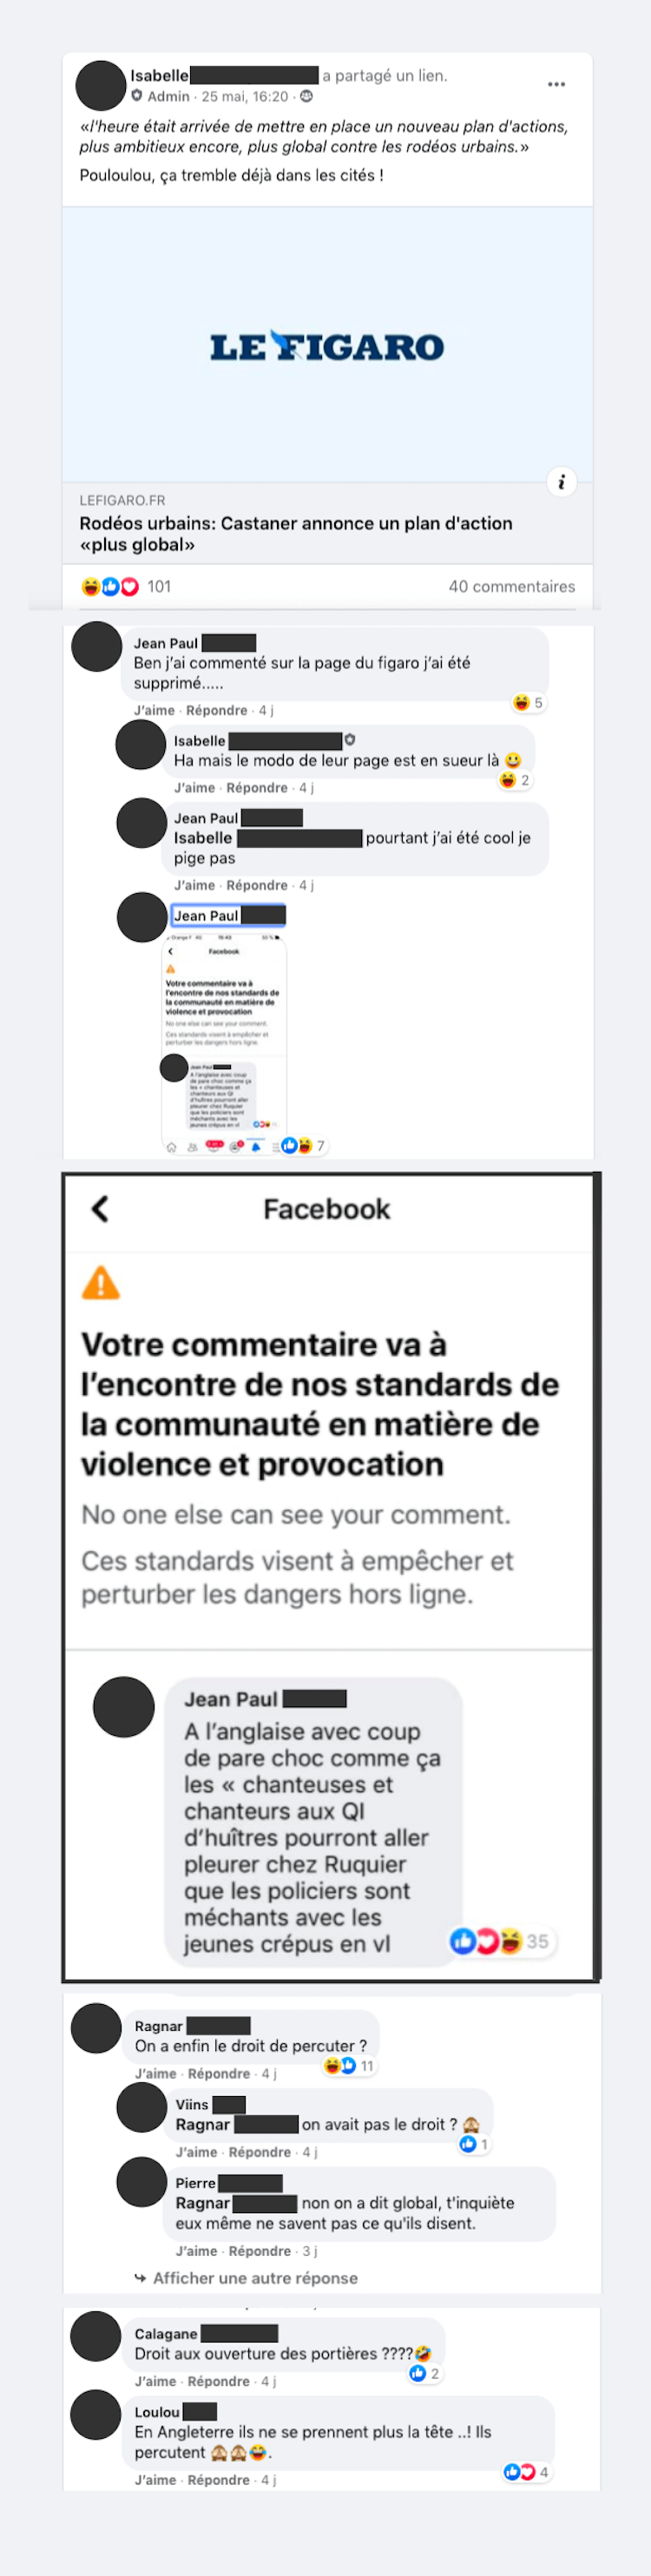 https://i0.wp.com/backend.streetpress.com/sites/default/files/racisme2_1.png?ssl=1